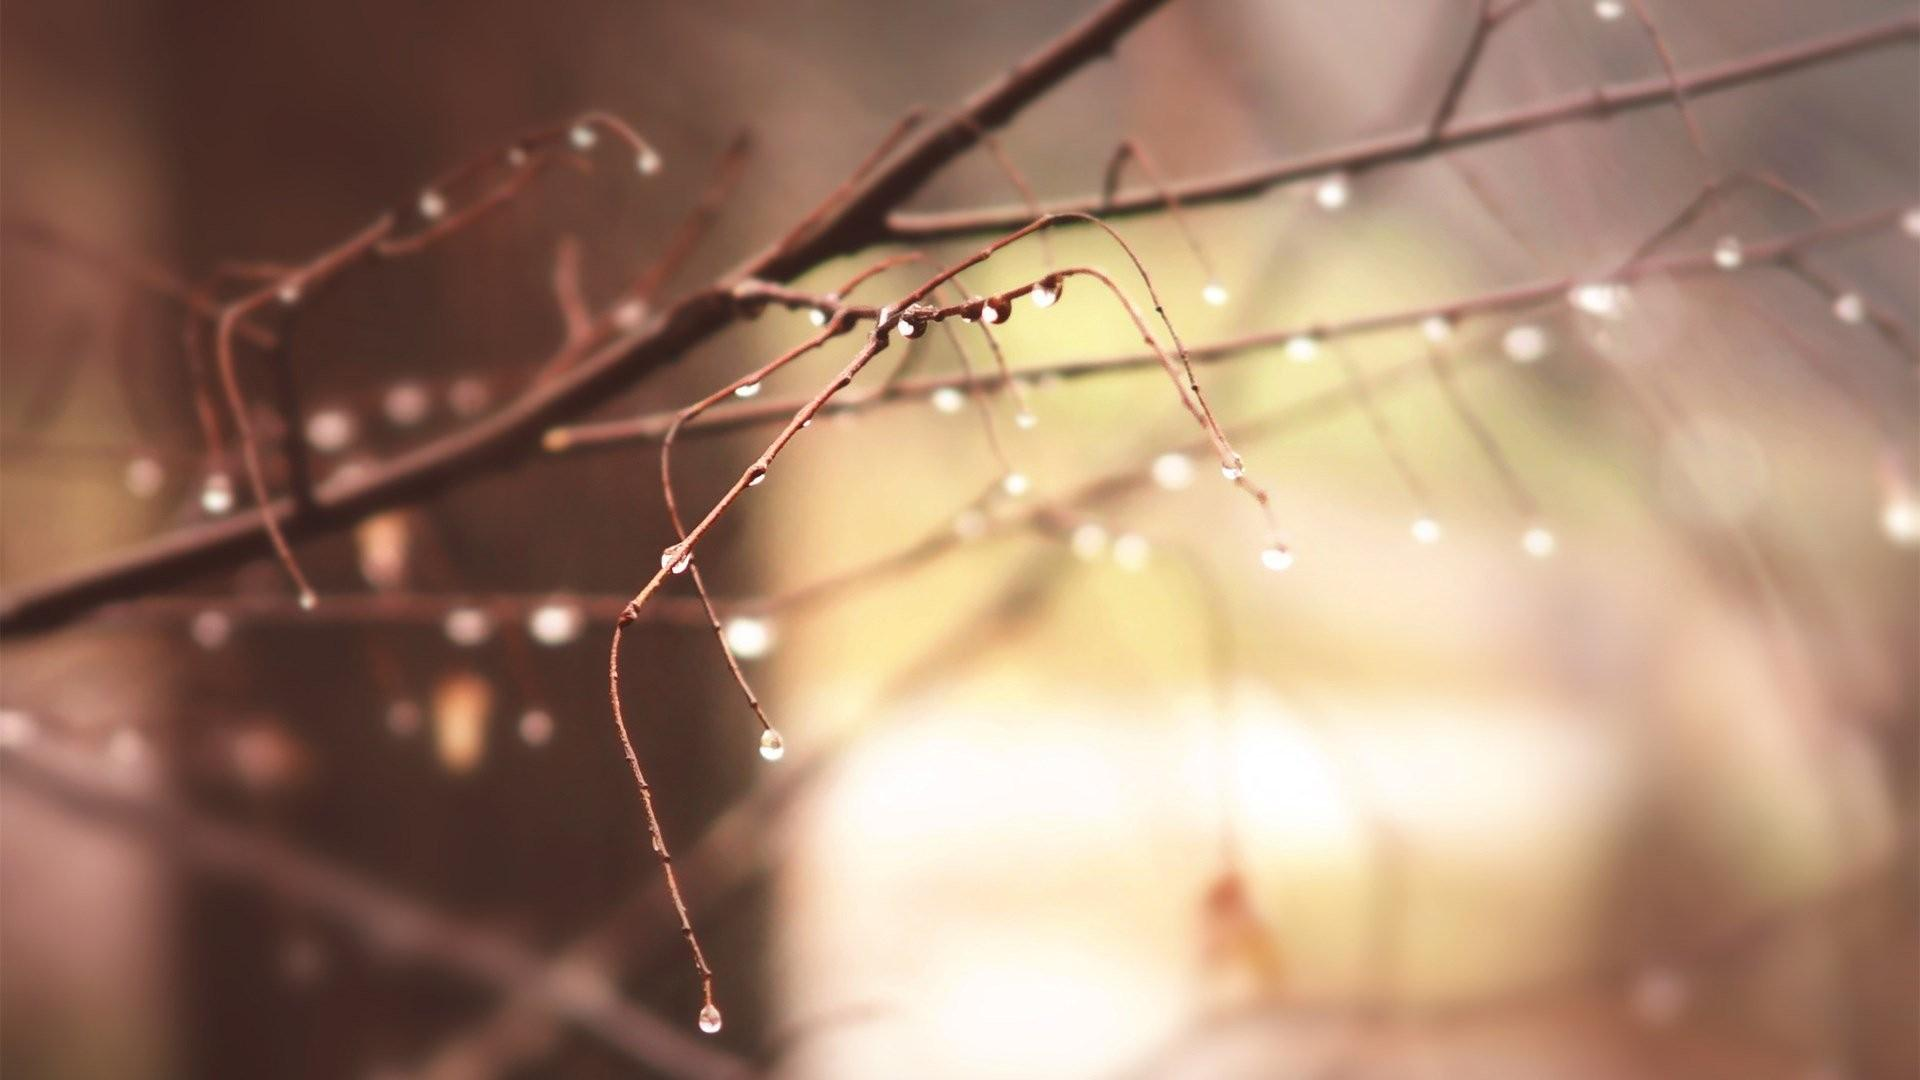 Dawn, Winter, Background, Closeup, Macro, Morning, Cool